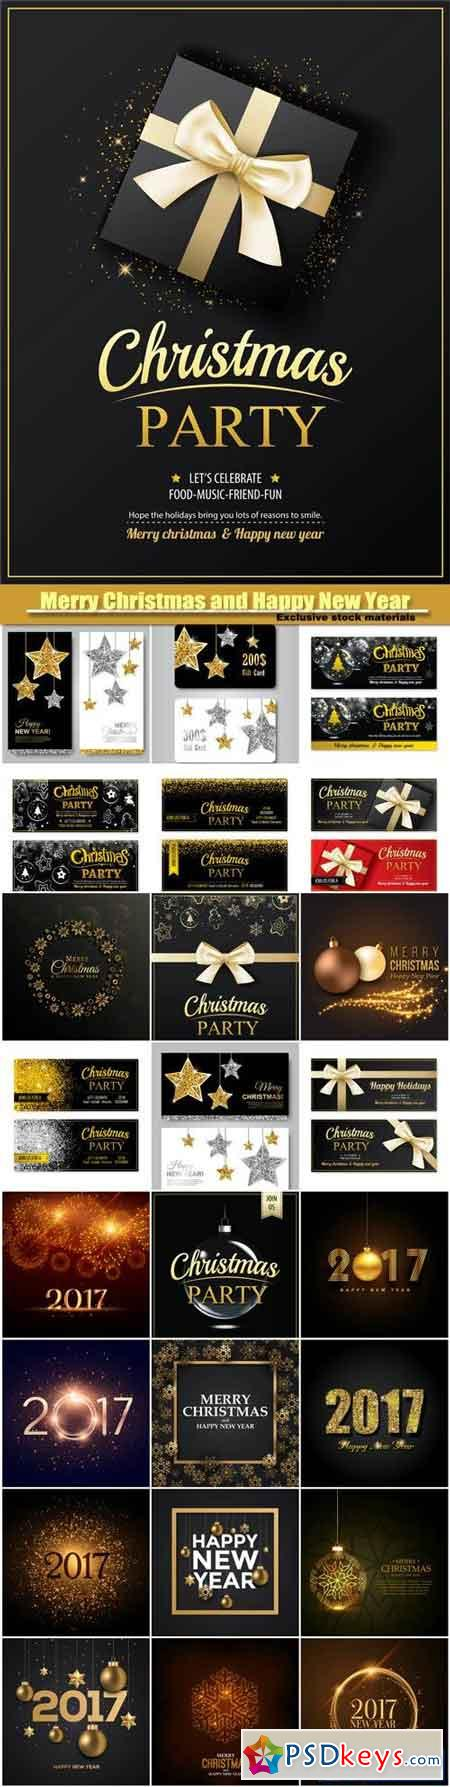 MC AND HPNY invitation party banner, card design template, gold glittering